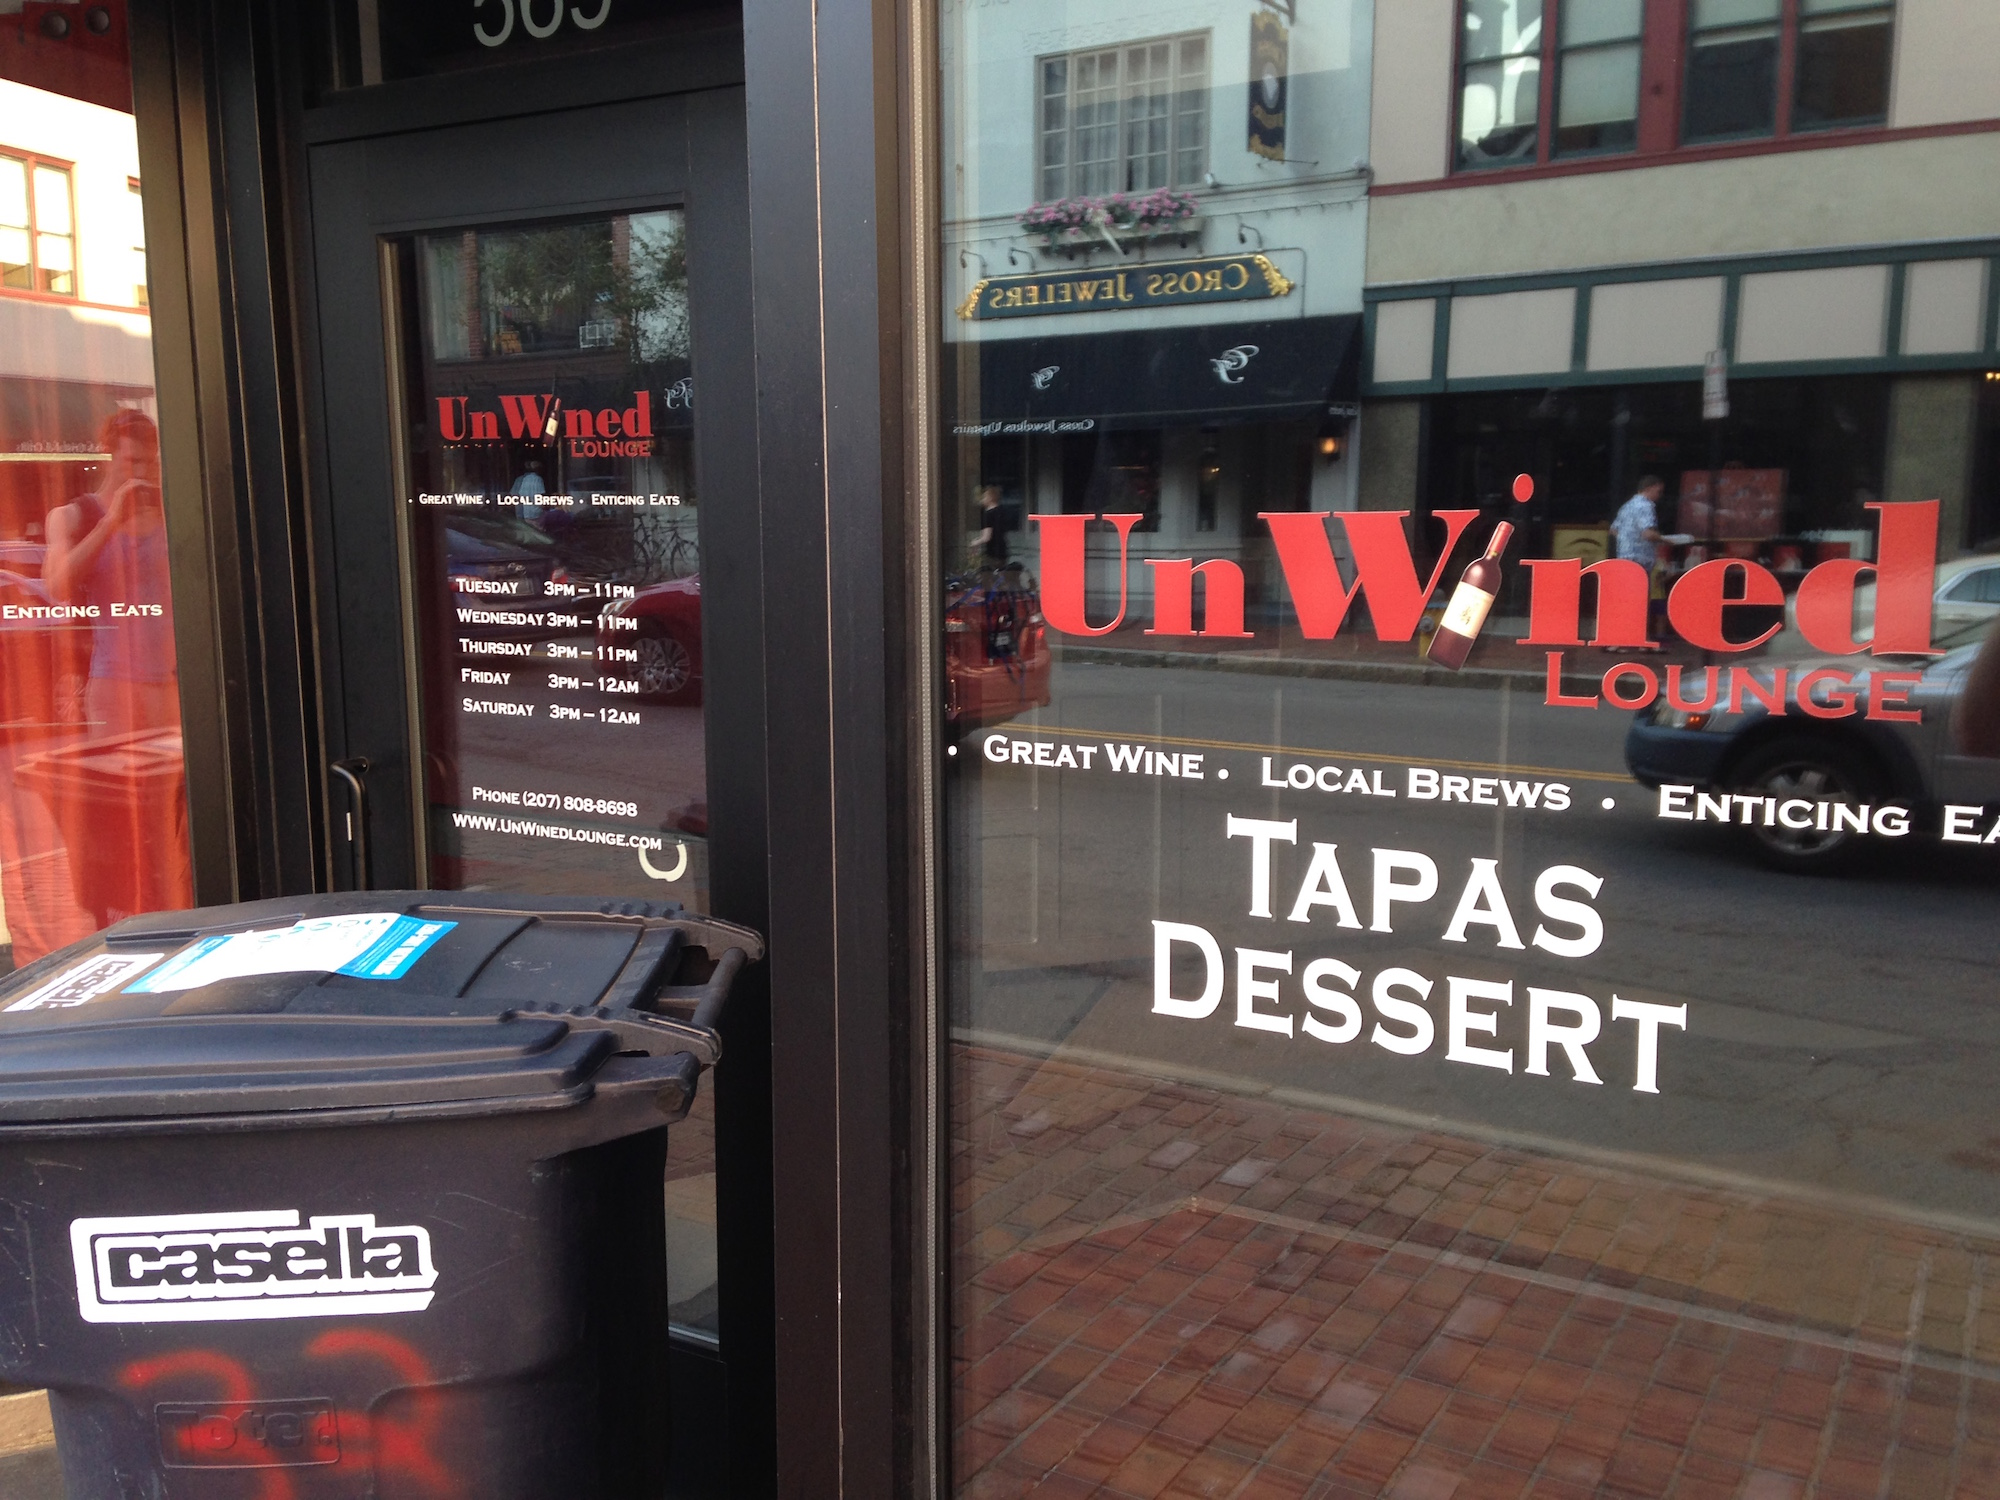 UnWINEd closed during regular service on a Tuesday.